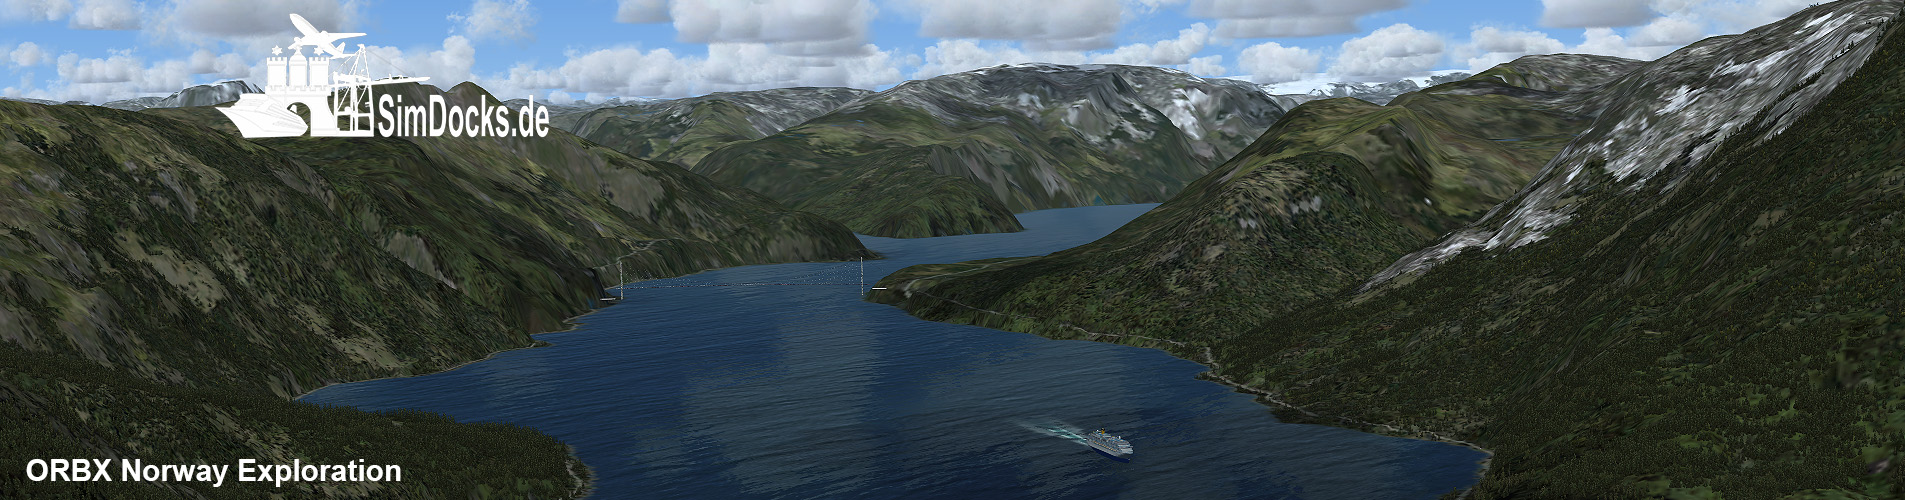 Headpic ORBX Norway